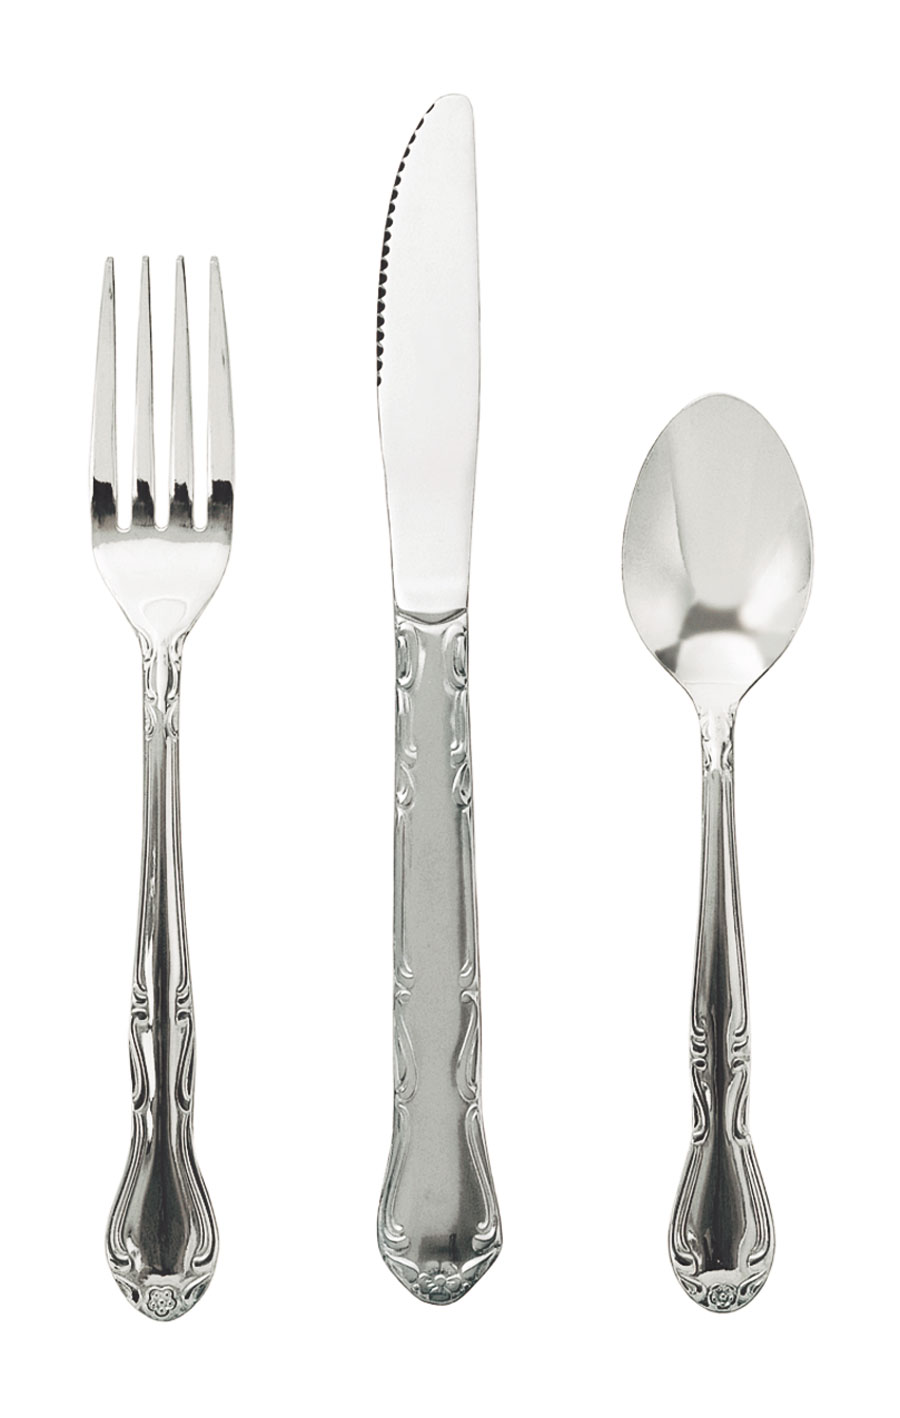 Update International CL-66 Claridge Salad Fork, Mirror Polish - 1 doz